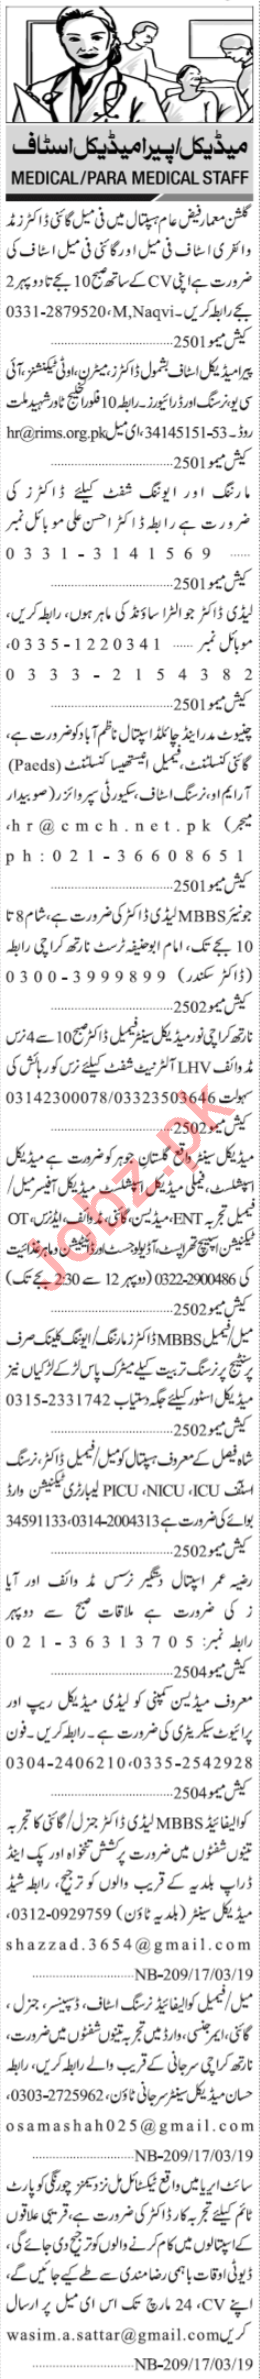 Jang Sunday Classified Ads 17th March 2019 Medical Staff